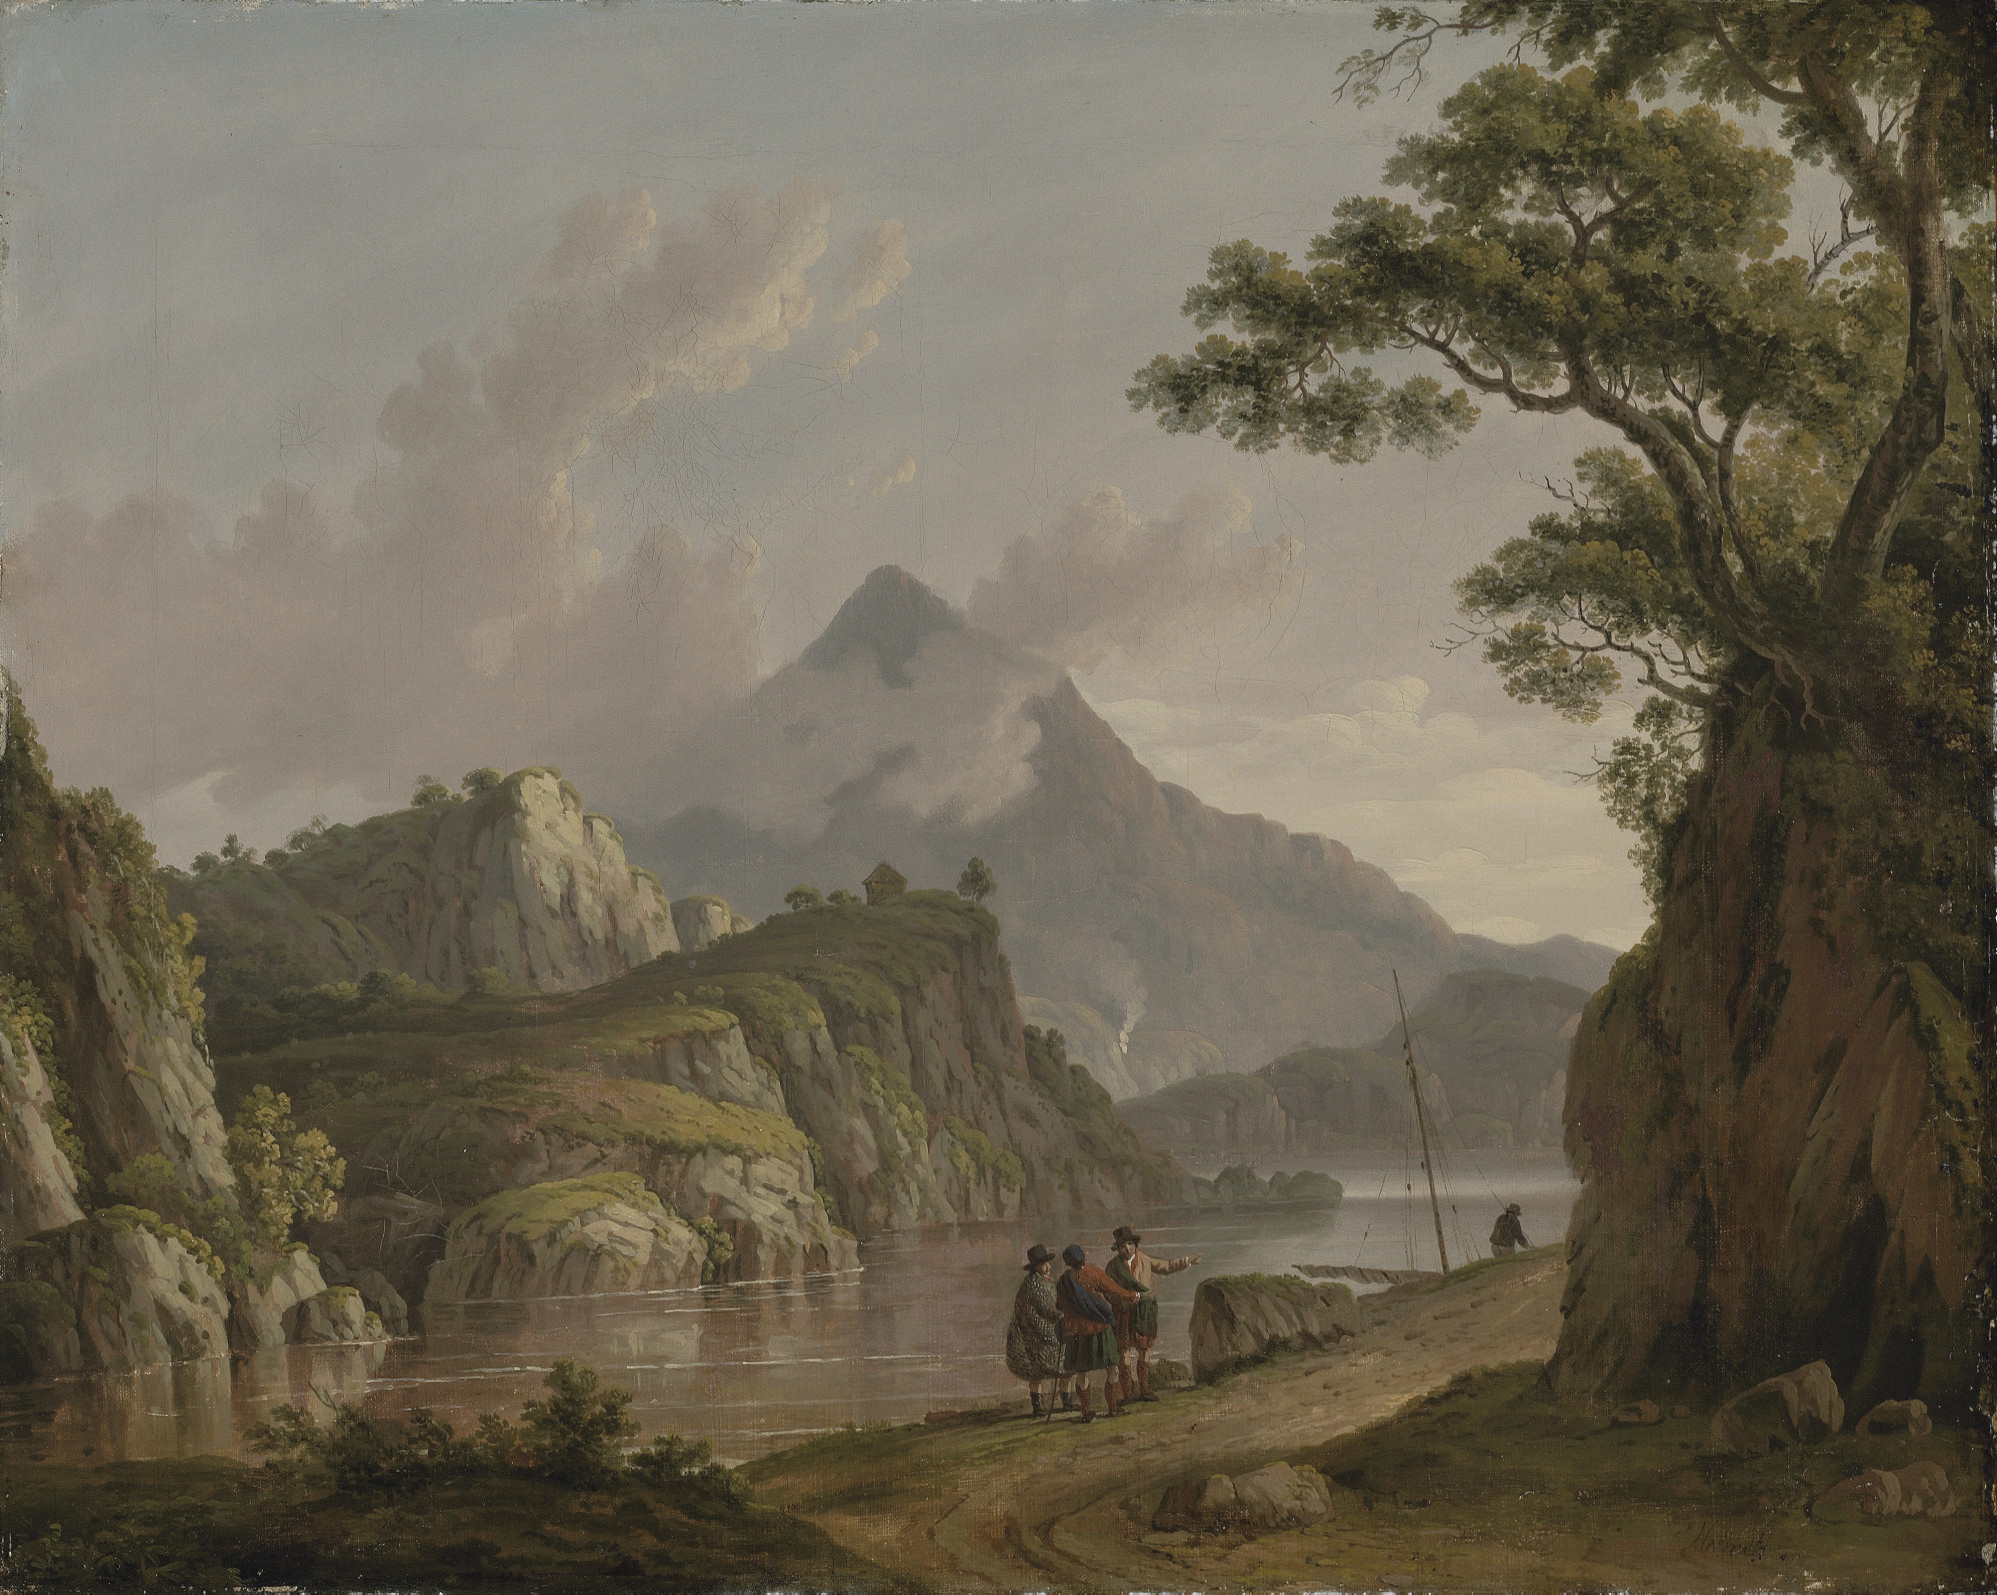 View of Loch Katrine, with travellers on a path